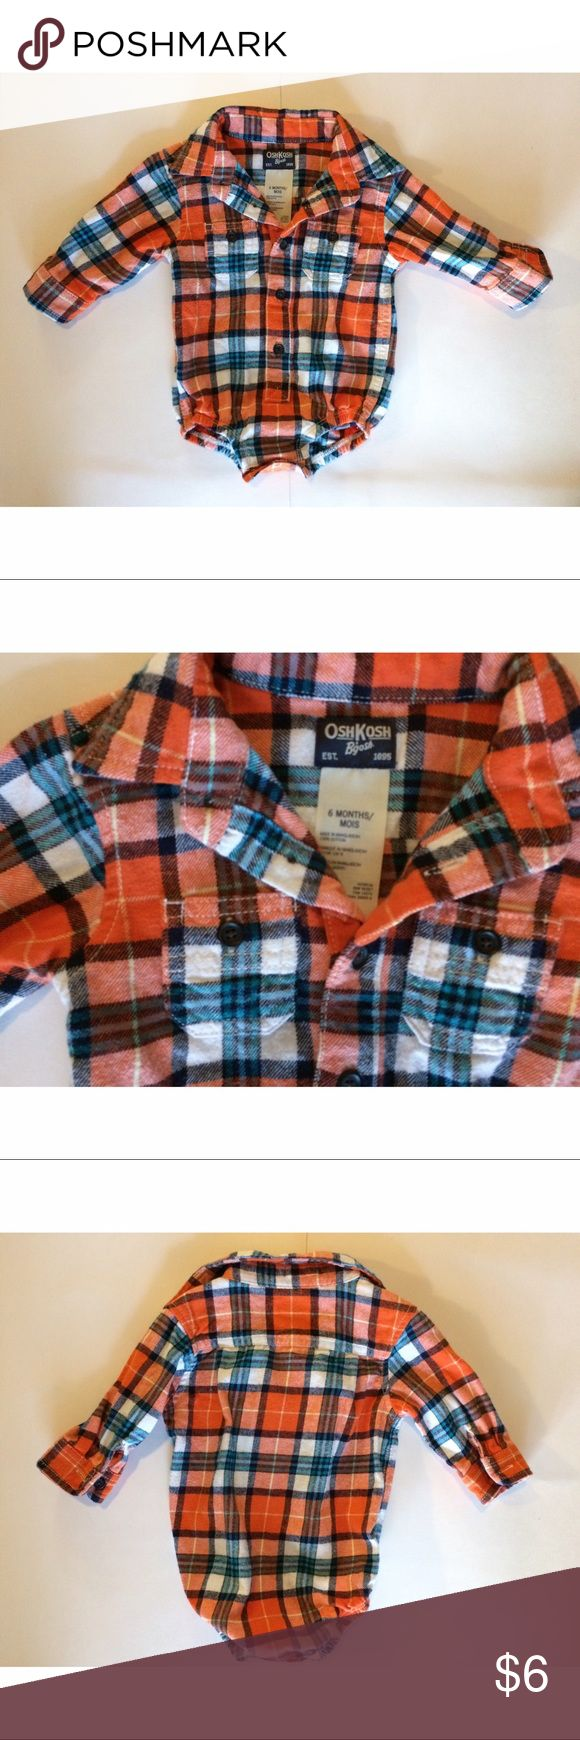 Flannel OshKosh B'Gosh Long Sleeve onesie Flannel OshKosh B'Gosh Long Sleeve onesie. 6 months . True to size IMO. Excellent condition. Washed & worn 2x. Florida weather mostly isn't conducive for flannel ☀️ Osh Kosh One Pieces